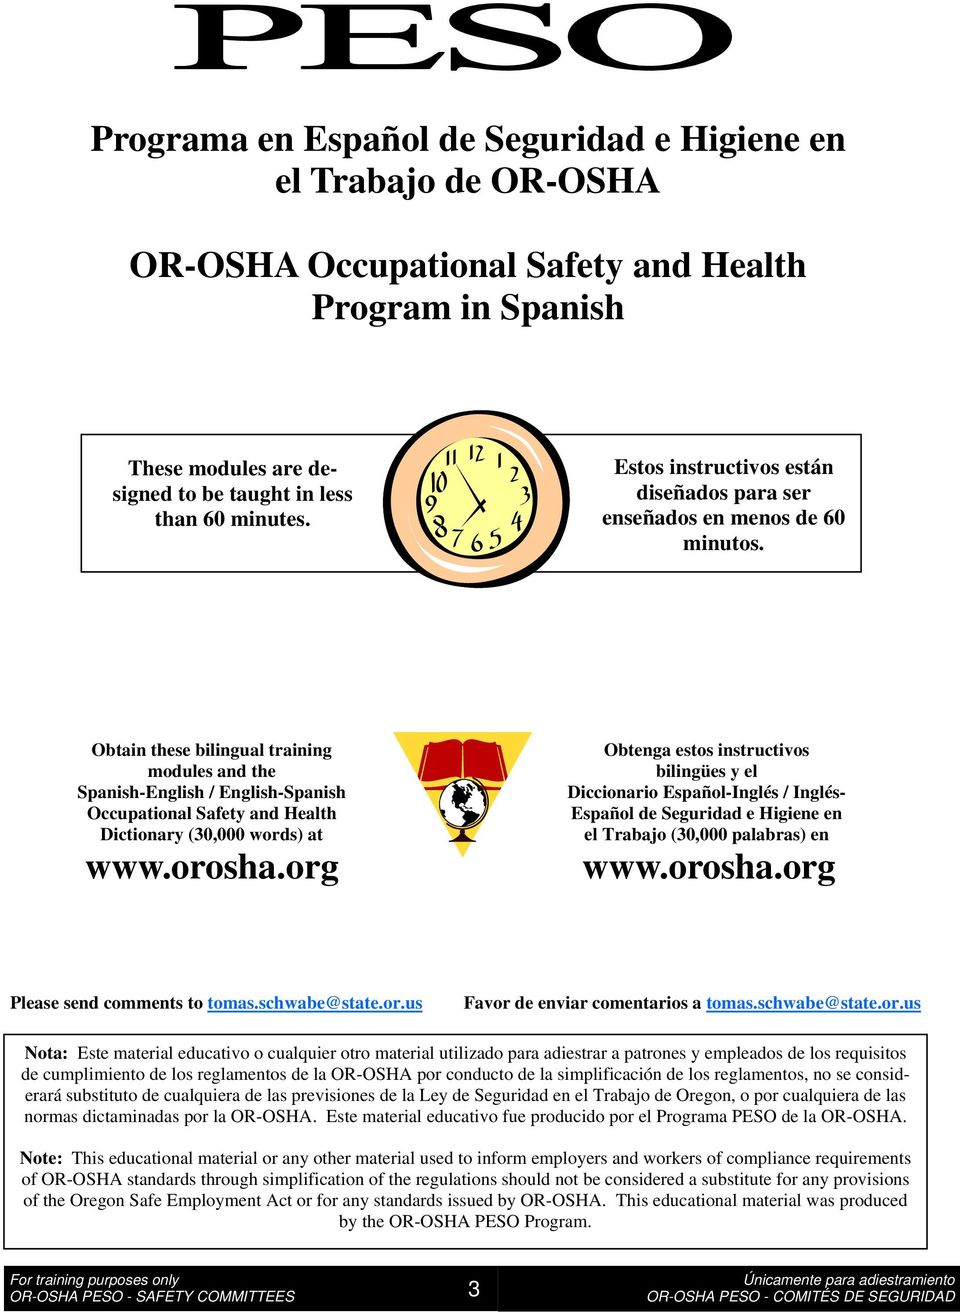 Obtain these bilingual training modules and the Spanish-English / English-Spanish Occupational Safety and Health Dictionary (30,000 words) at www.orosha.